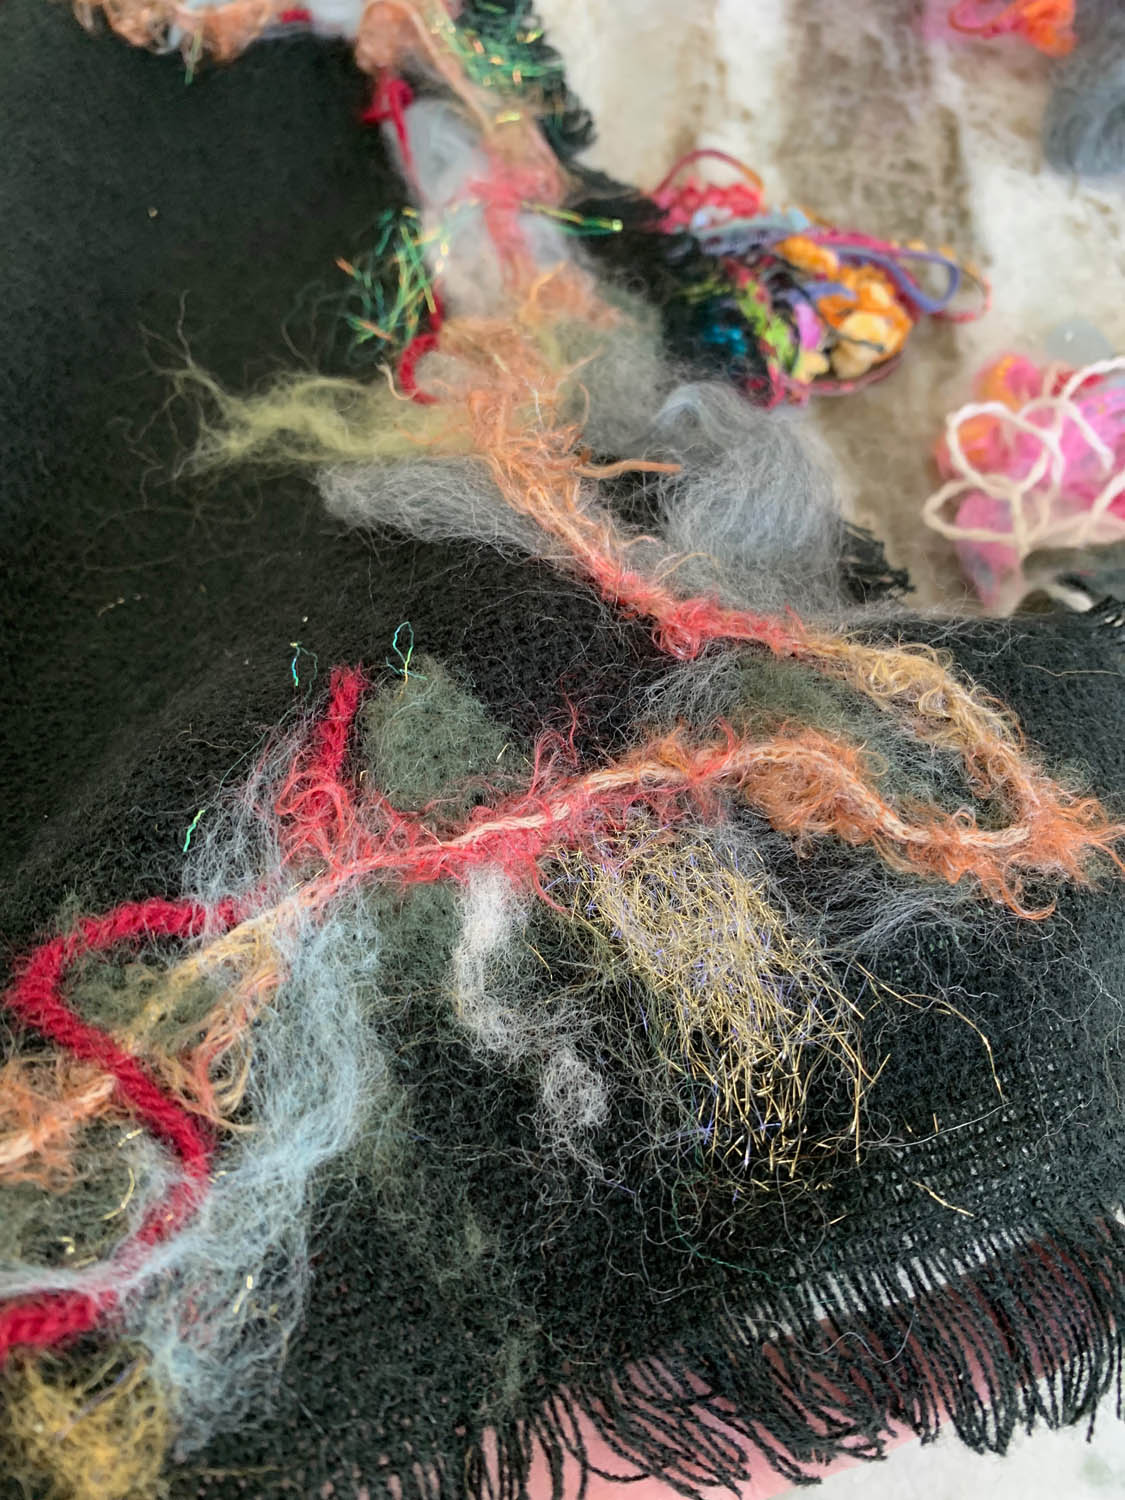 fibers and yarns being placed on pre-made scarf getting ready to needle felt in place